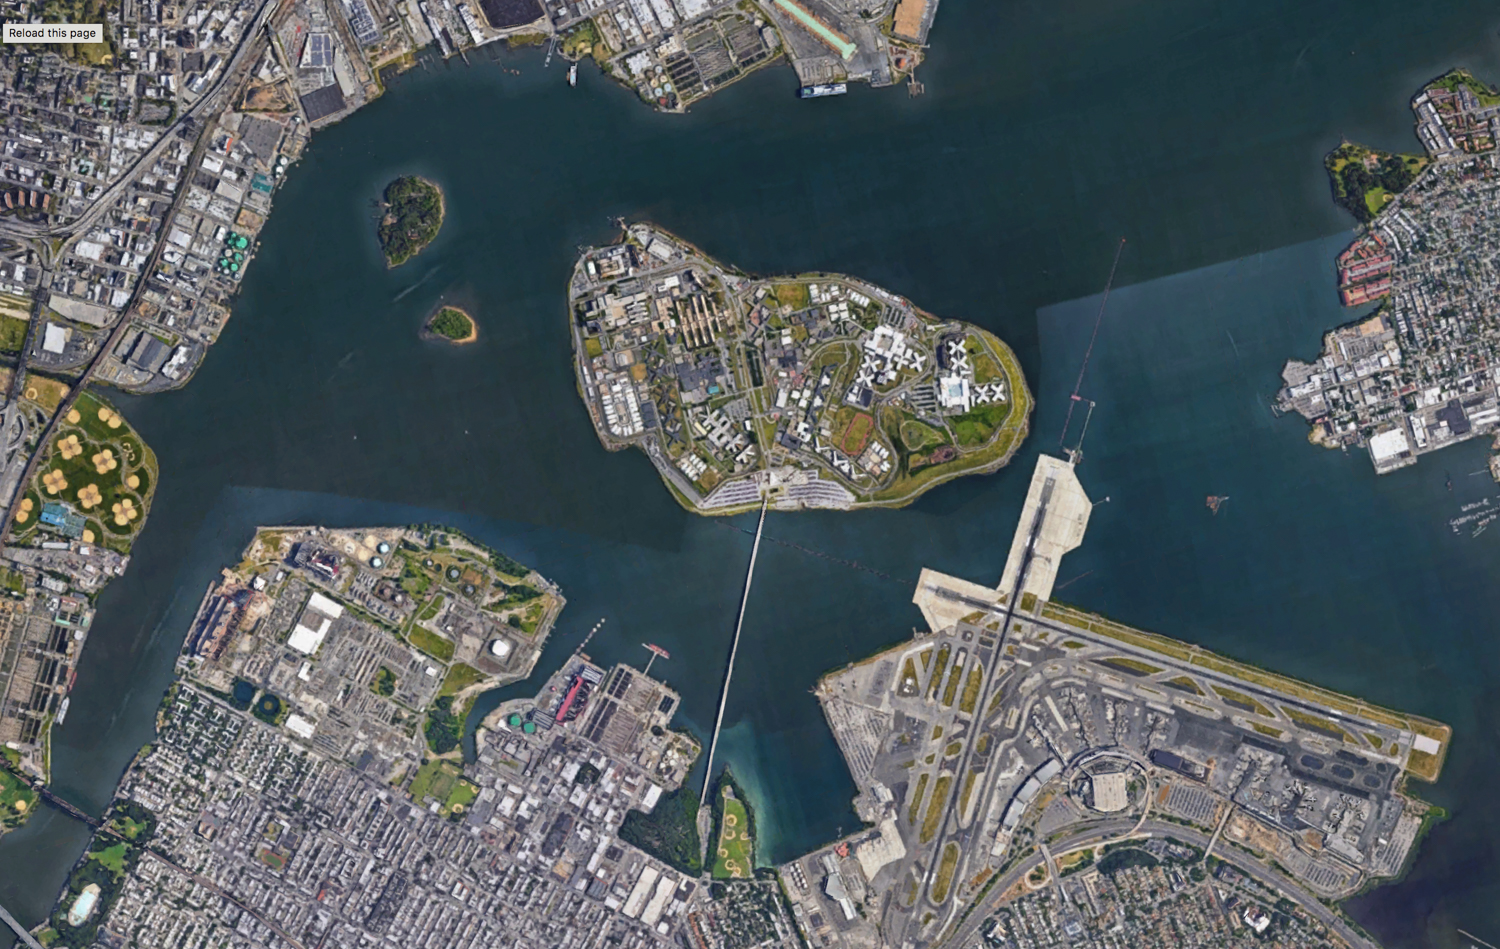 Birdseye view of Rikers Island, via Google Maps